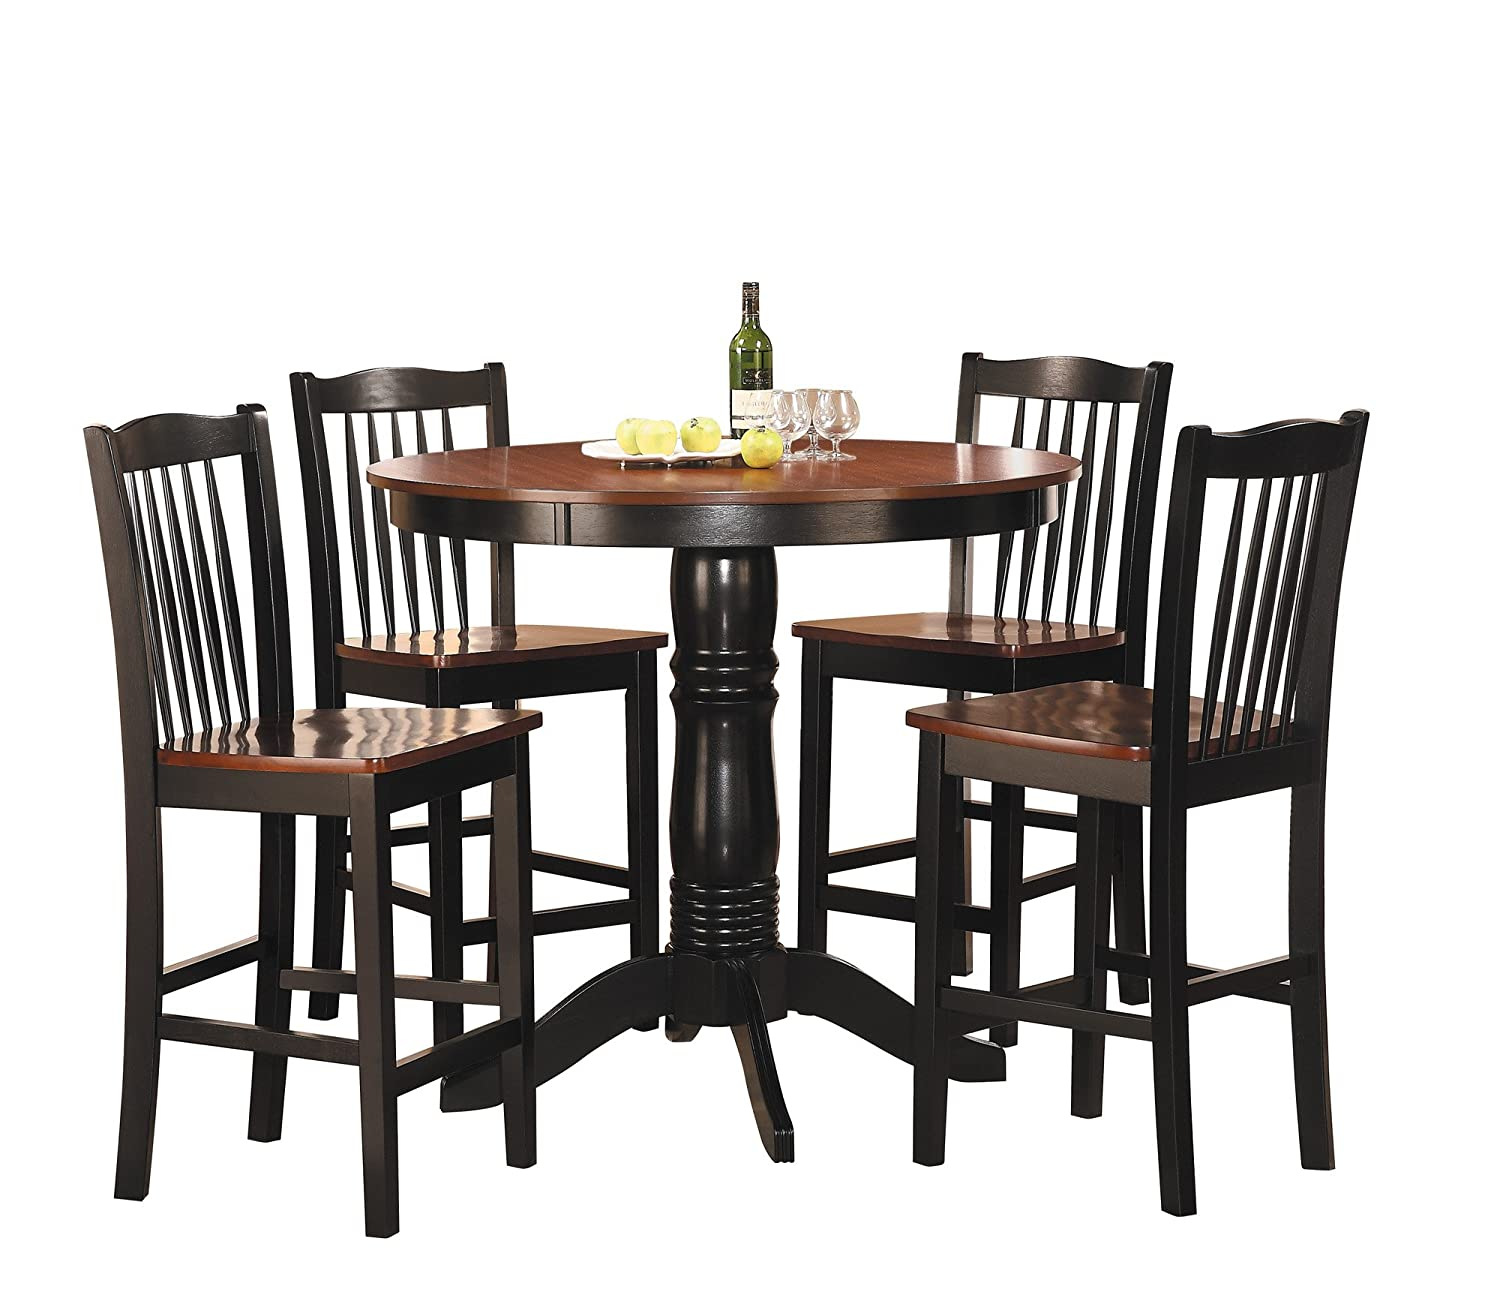 Amazon com homelegance 2458 36 5 piece round counter height dining set kitchen dining